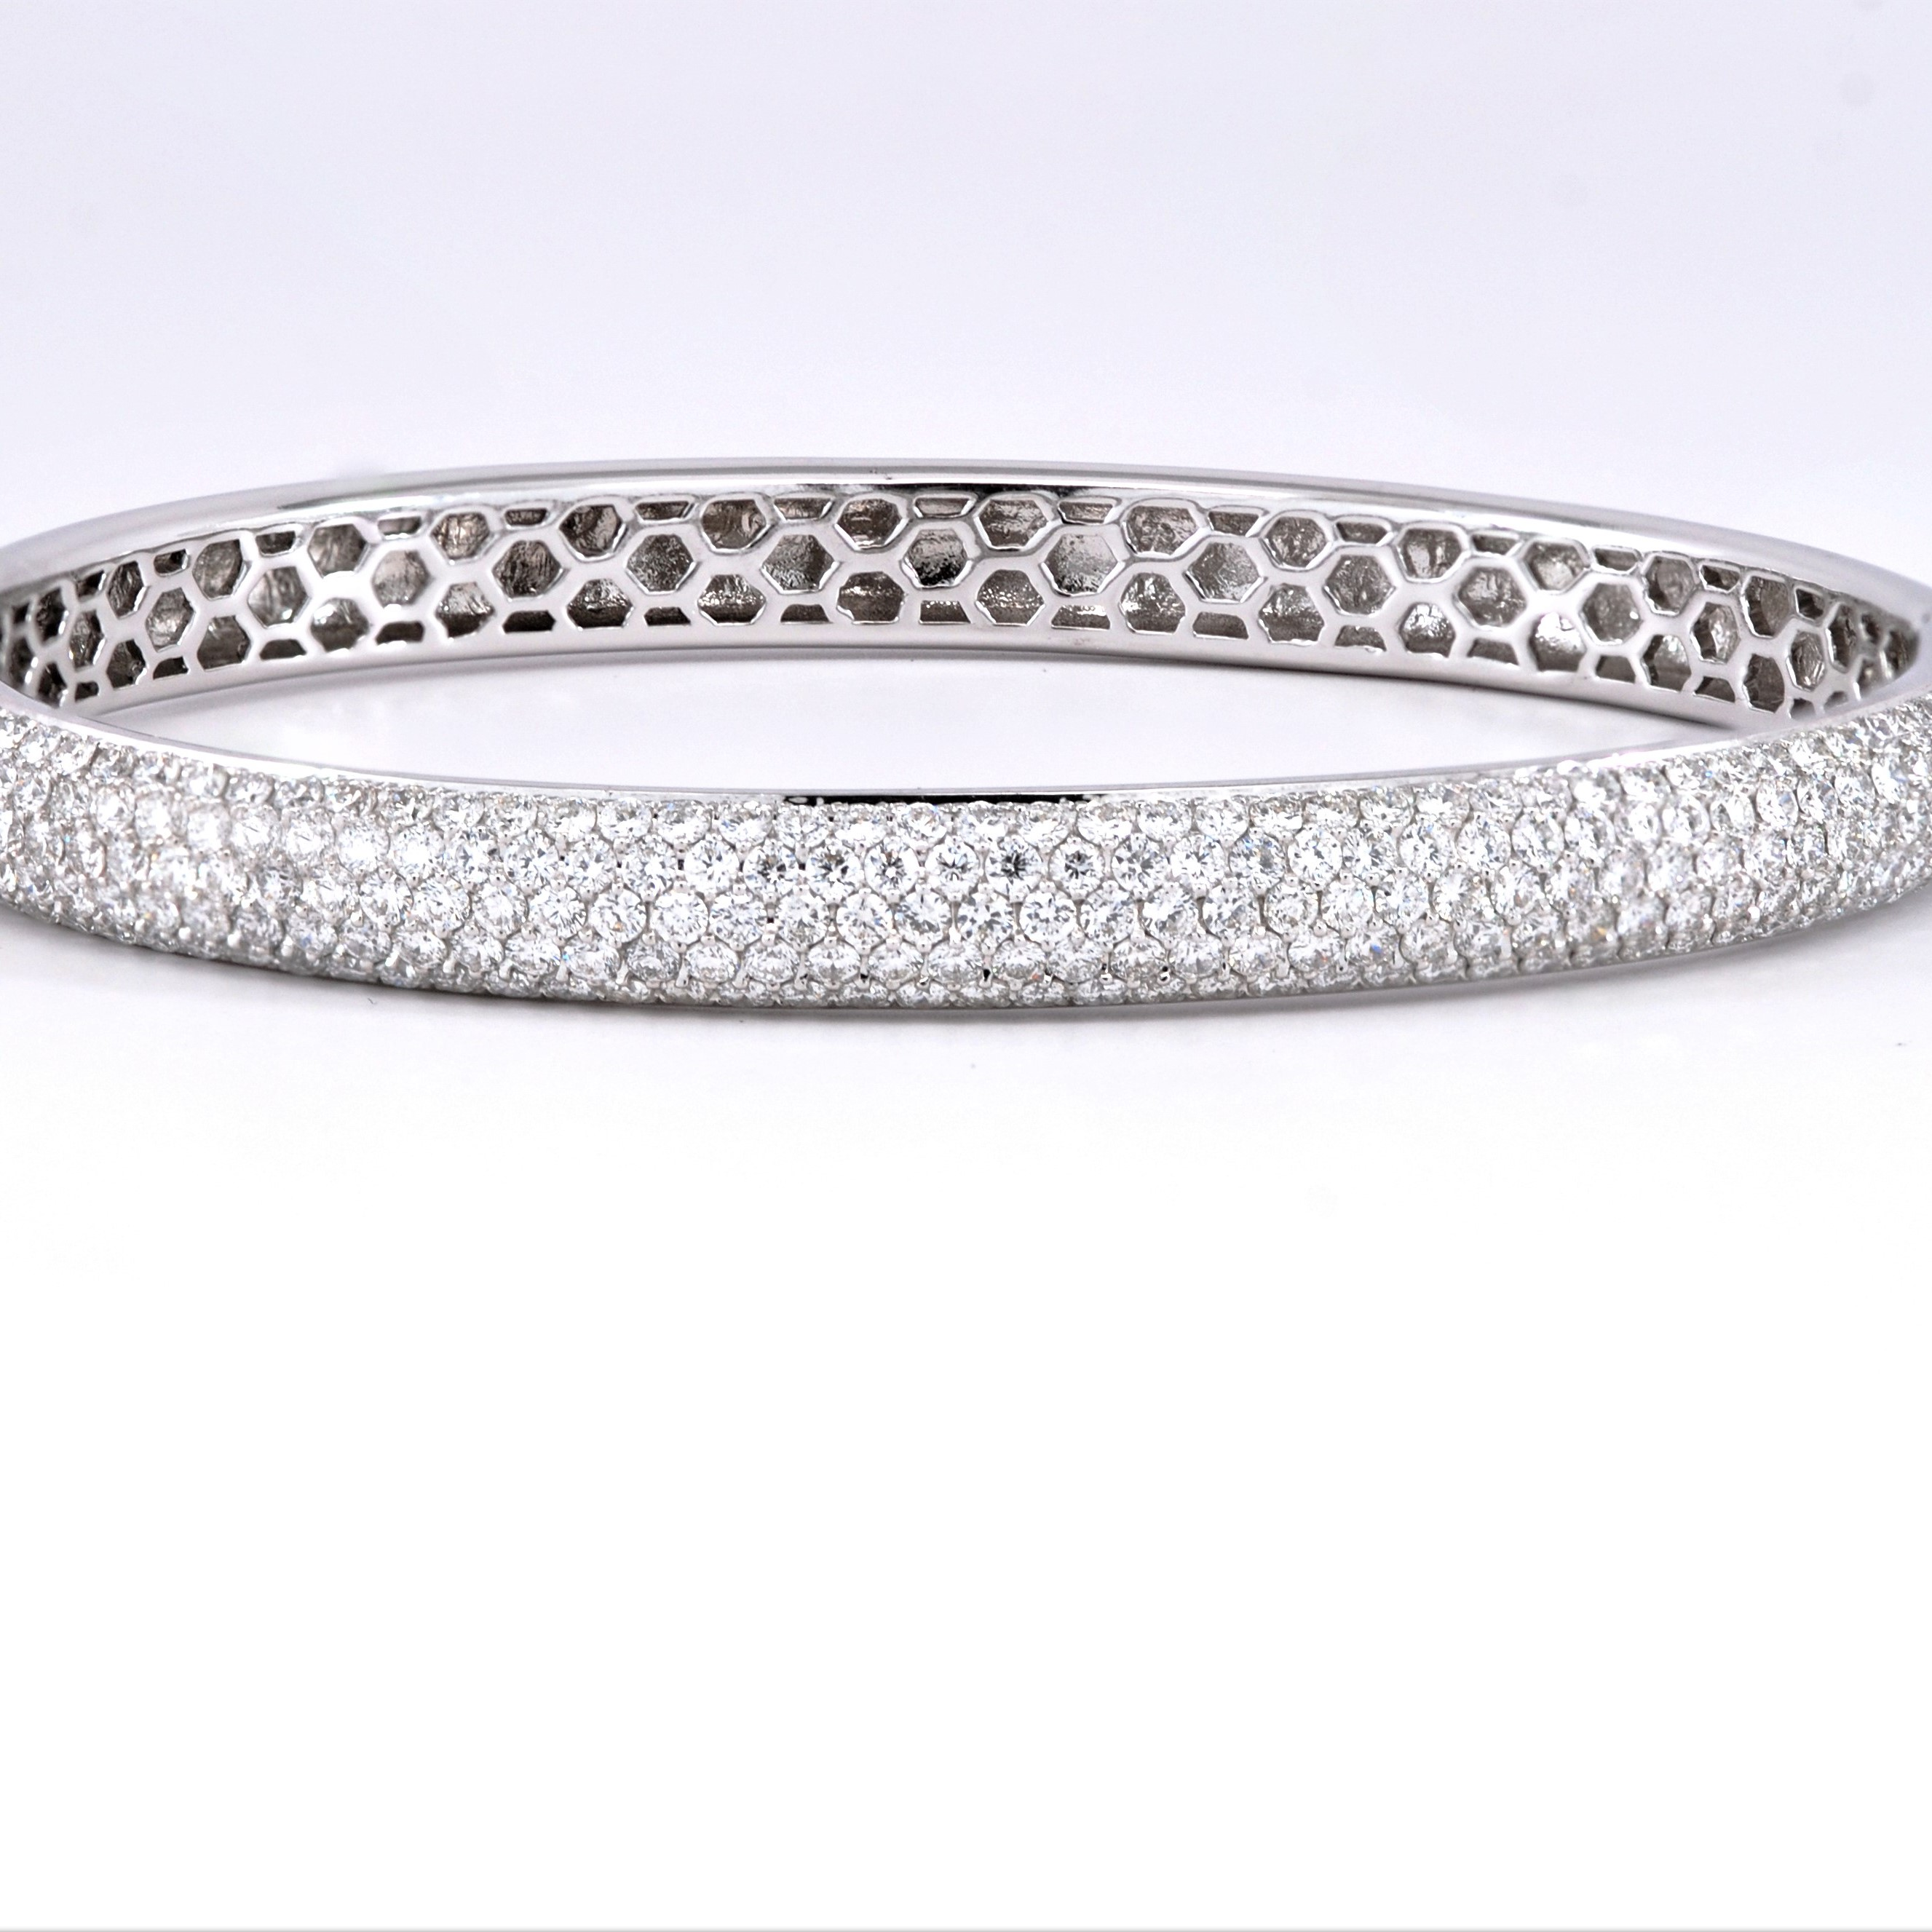 bangles gold in round white diamond estate vintage img pave bracelet bangle